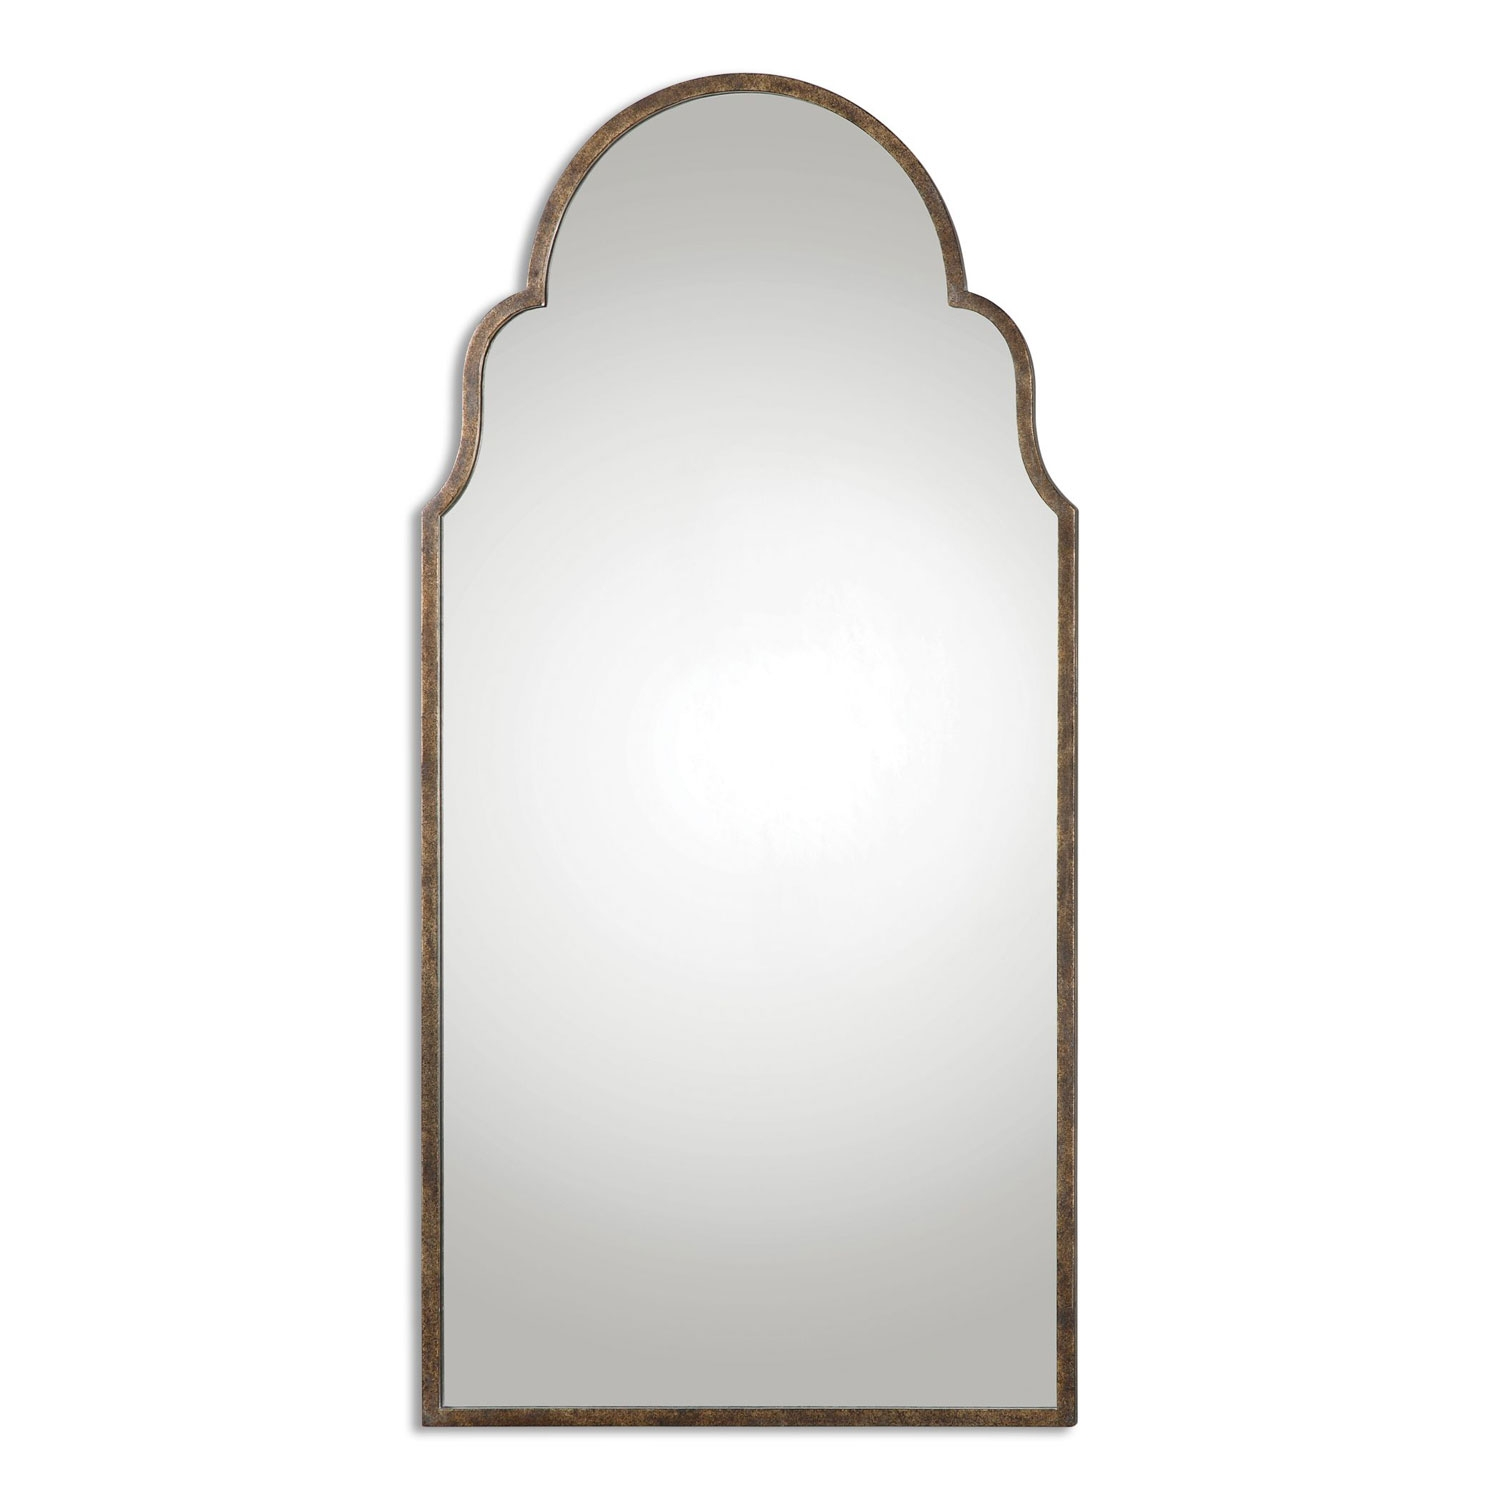 Arched Wall Mirror Wall Shelves With Regard To Arched Wall Mirror (Image 4 of 15)